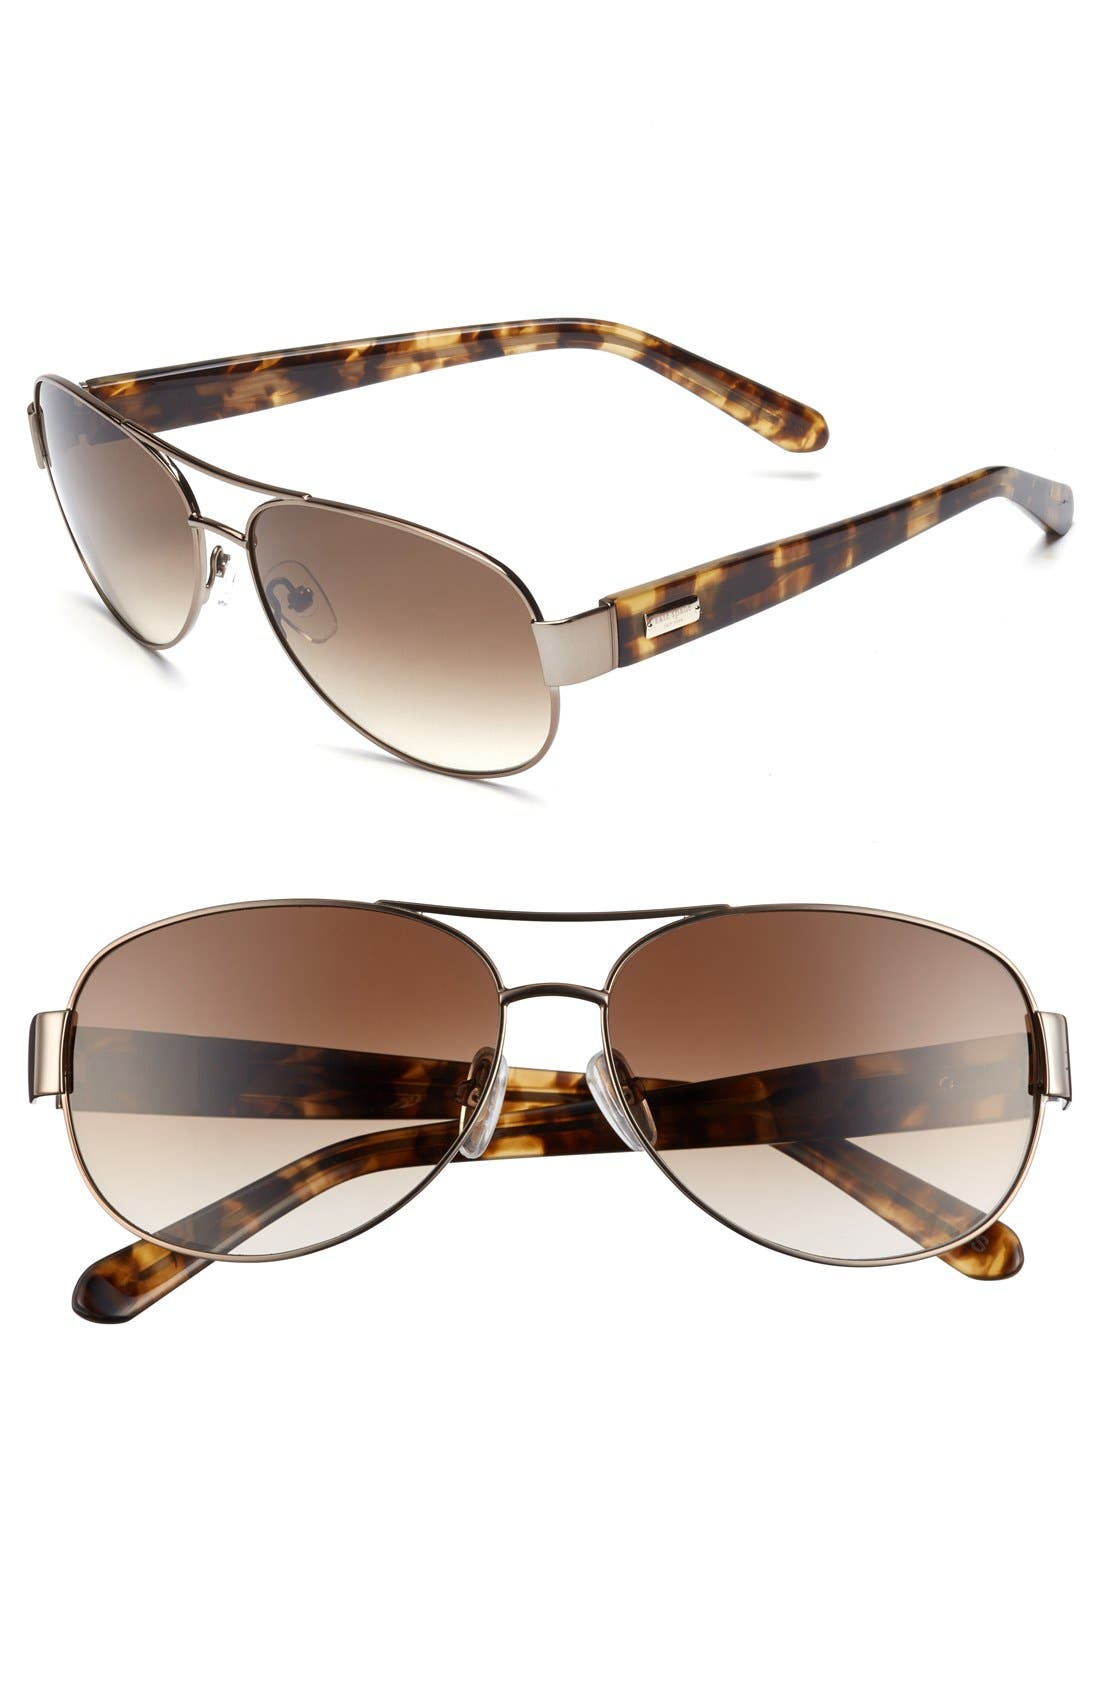 Main Image - RAEN 'Maude' 53mm Sunglasses